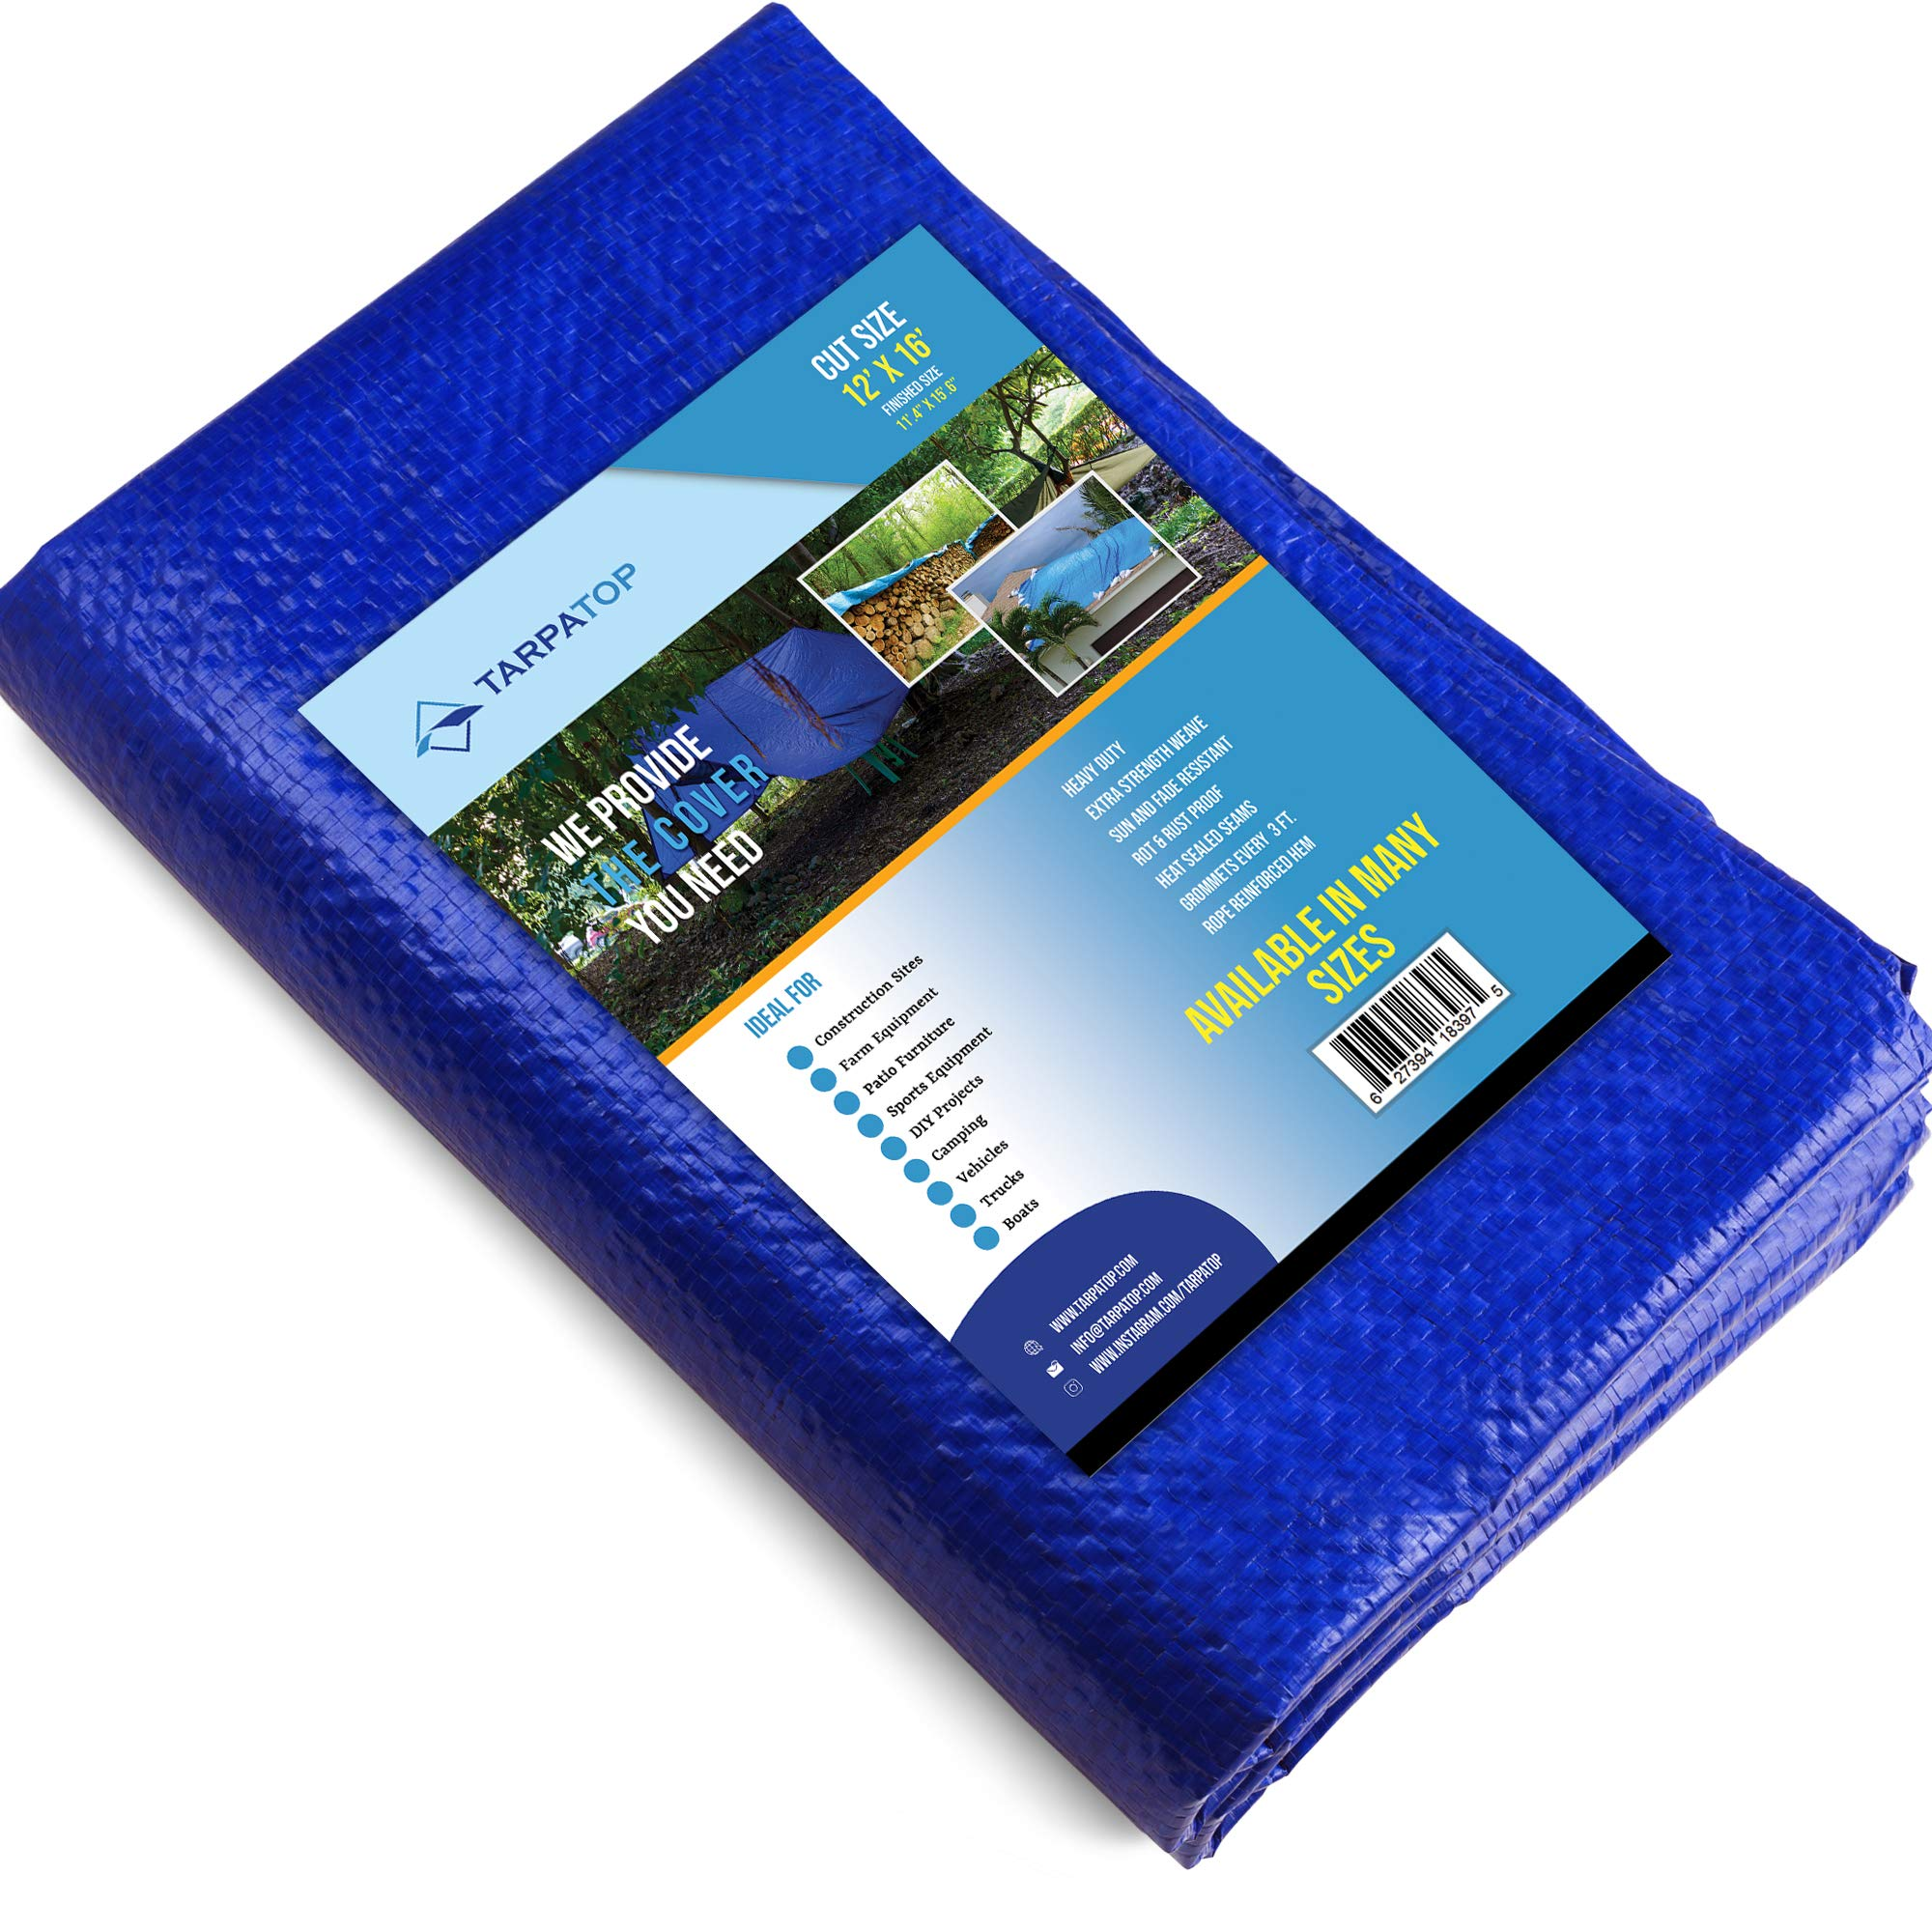 Campers Rust And UV Resistant Protection Sheet Prime Tarps TRTA000457 Boats And Emergency Shelter Blue Tarpaulin Protector For Cars Rot 12x16Waterproof Multi-Purpose Poly Tarp Construction Contractors